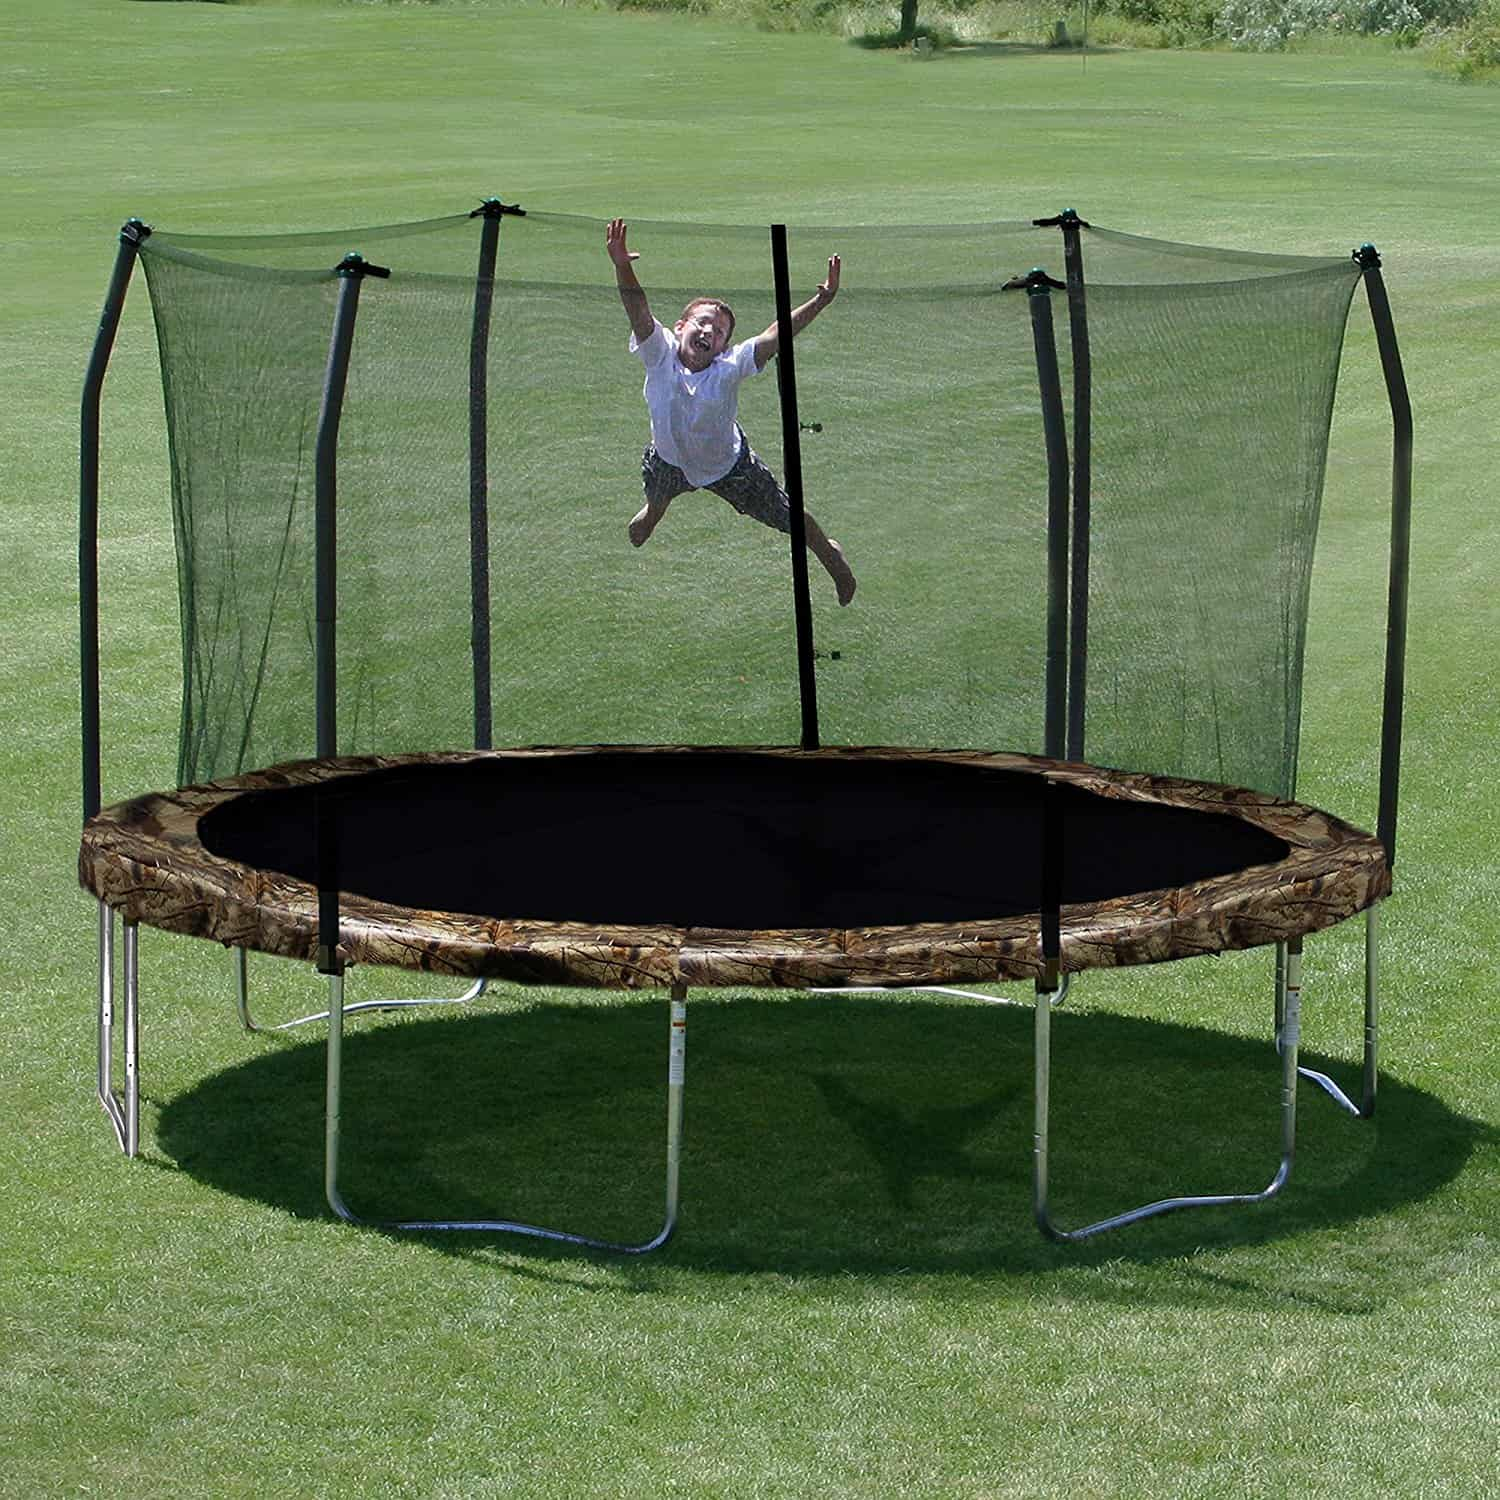 12 Foot Trampoline Mat And Springs: Skywalker Trampolines Round And Enclosure, 15 Feet